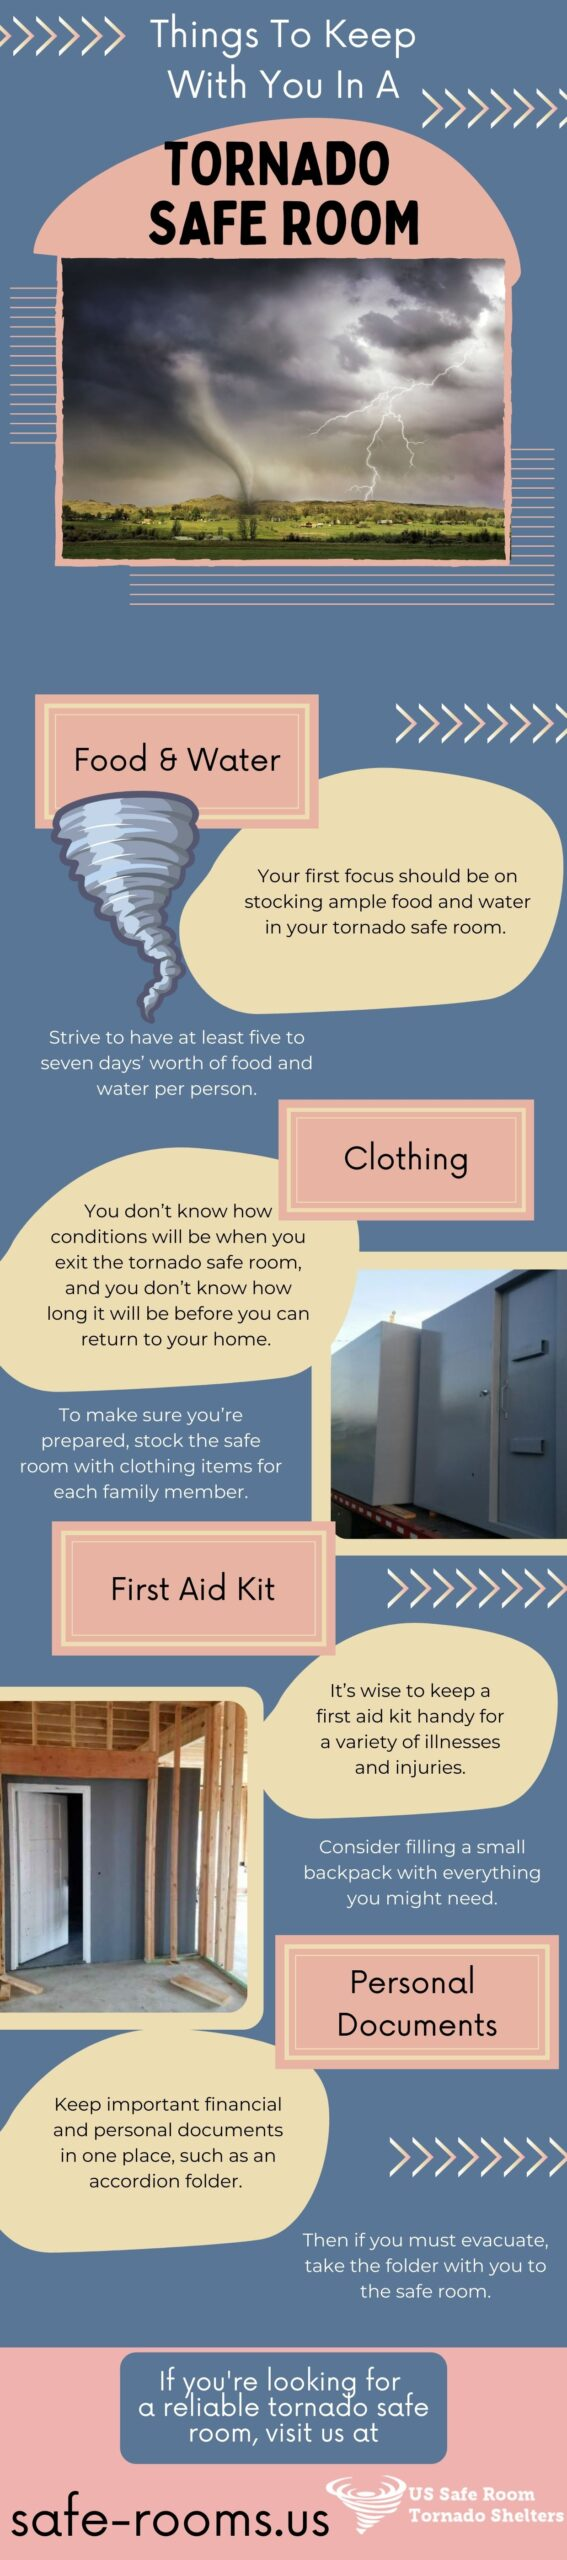 things to keep in a safe room